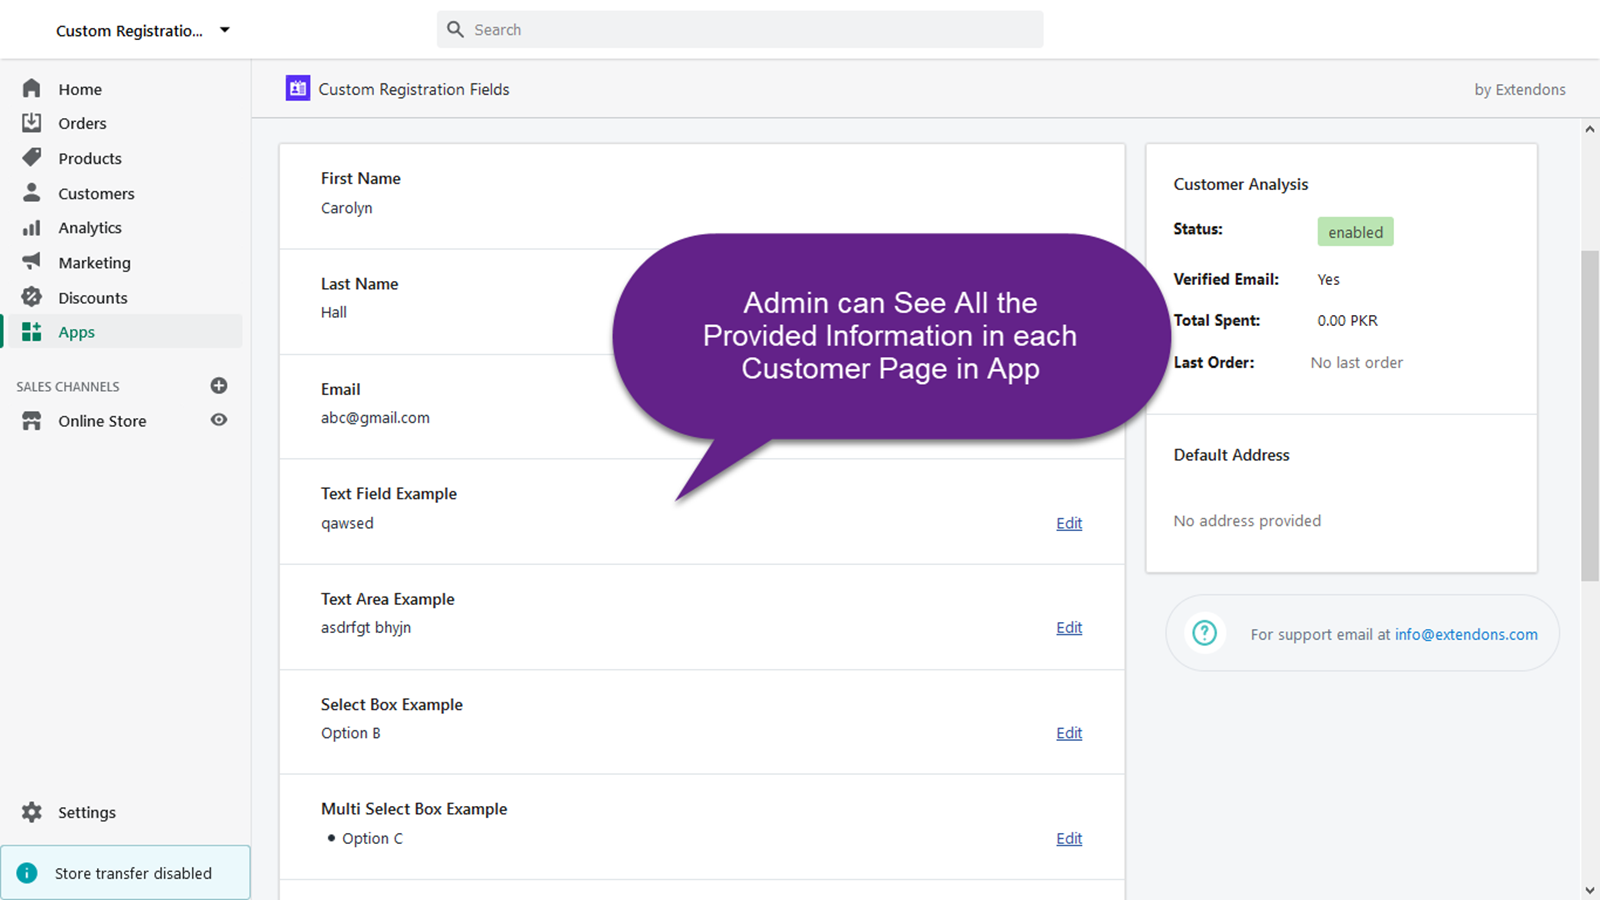 Admin can See All the Provided Information in each Customer Page